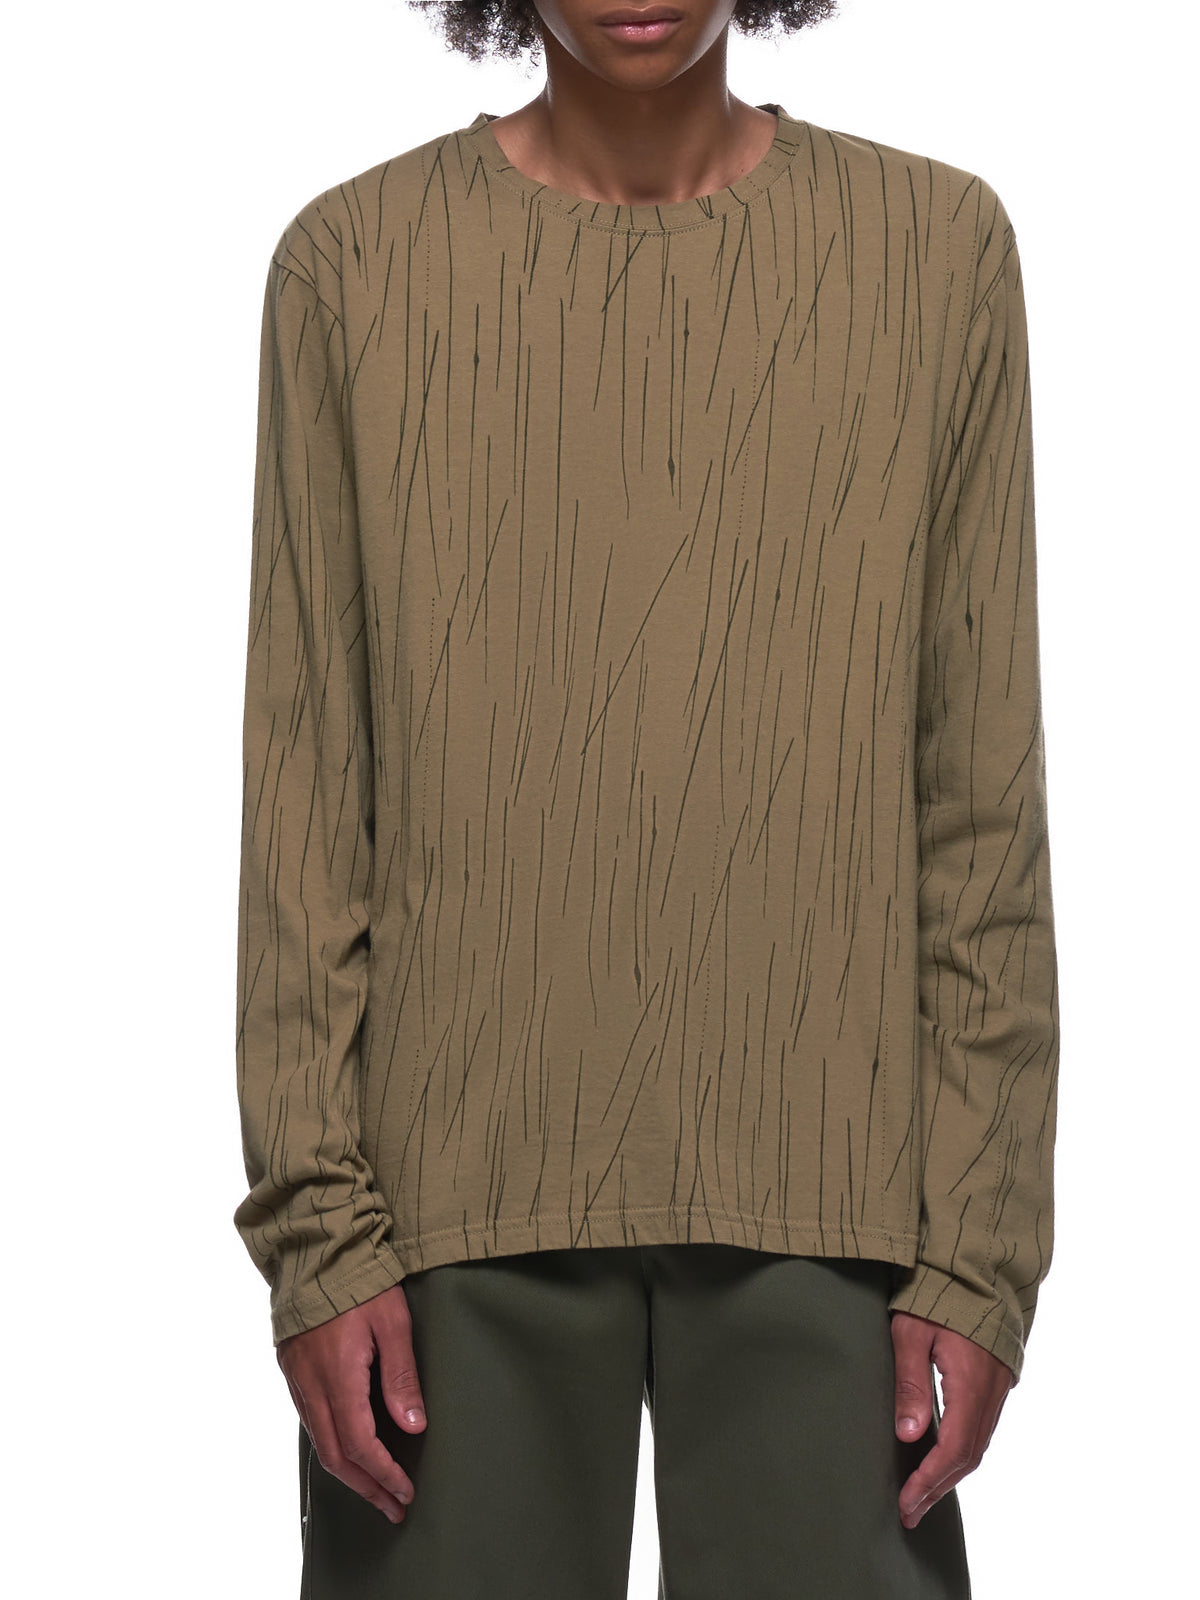 Distorted Lines Smiley Face Long Sleeve Shirt (K2005LC192-KHAKI)